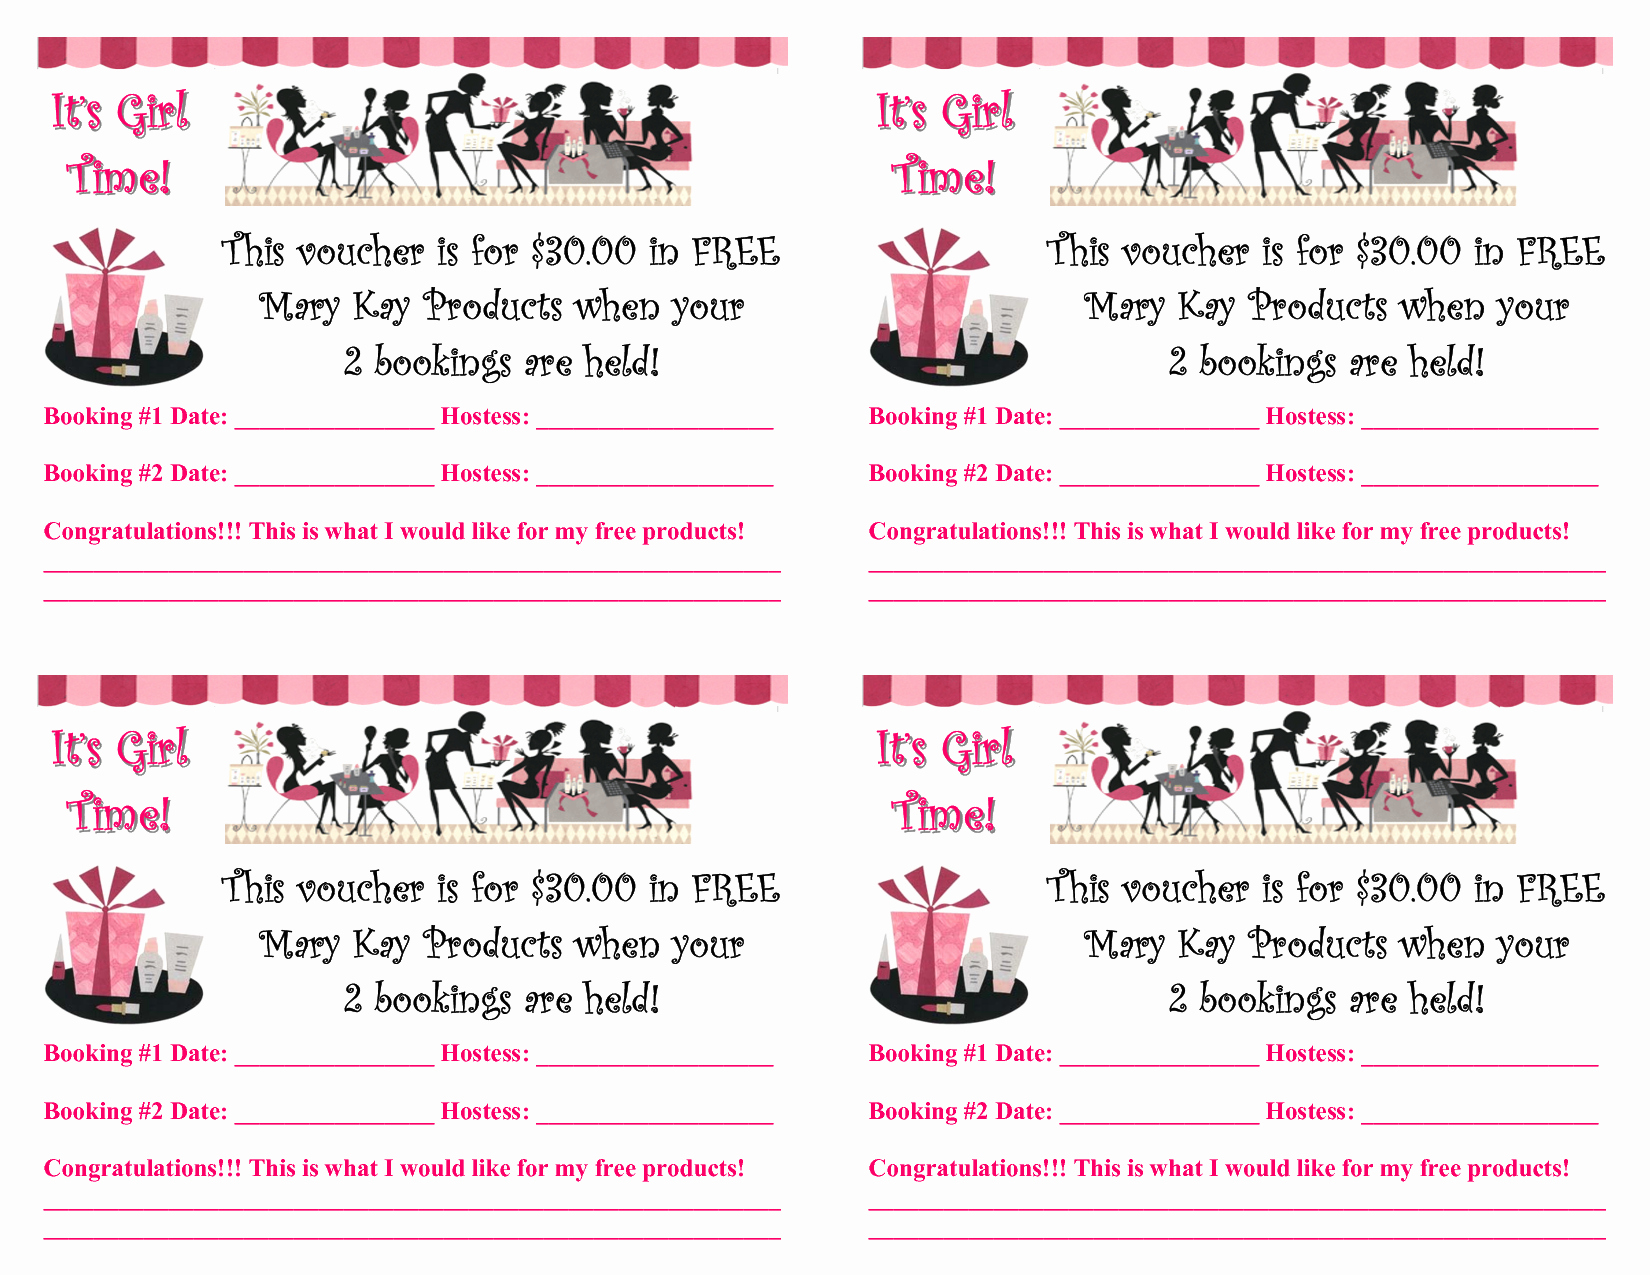 Mary Kay Party Invitation Wording New Mary Kay Invitations Printables